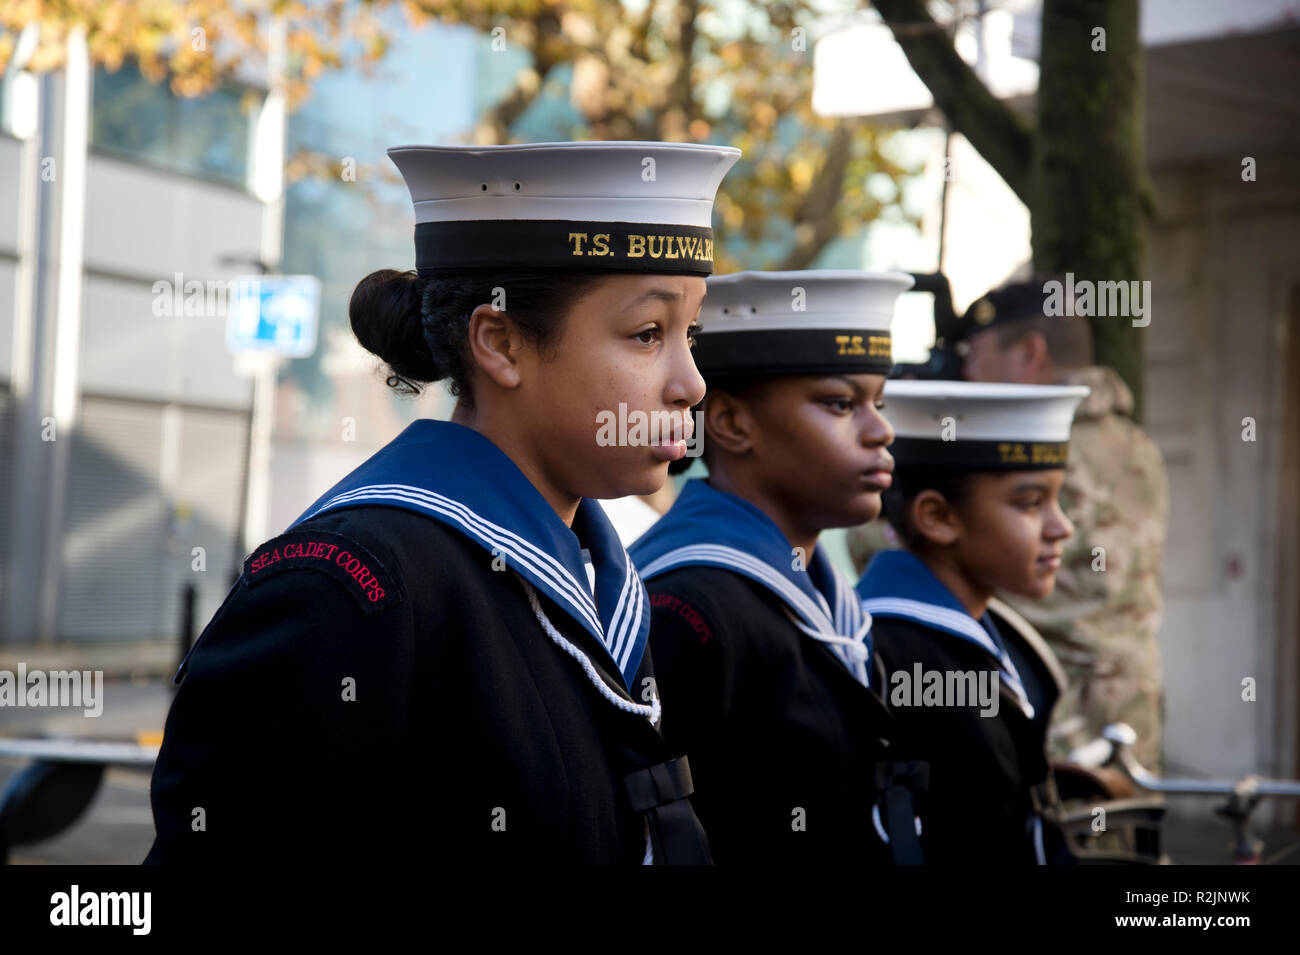 Remembrance Day Parade. St John at Hackney. Young cadets on parade, marching. - Stock Image